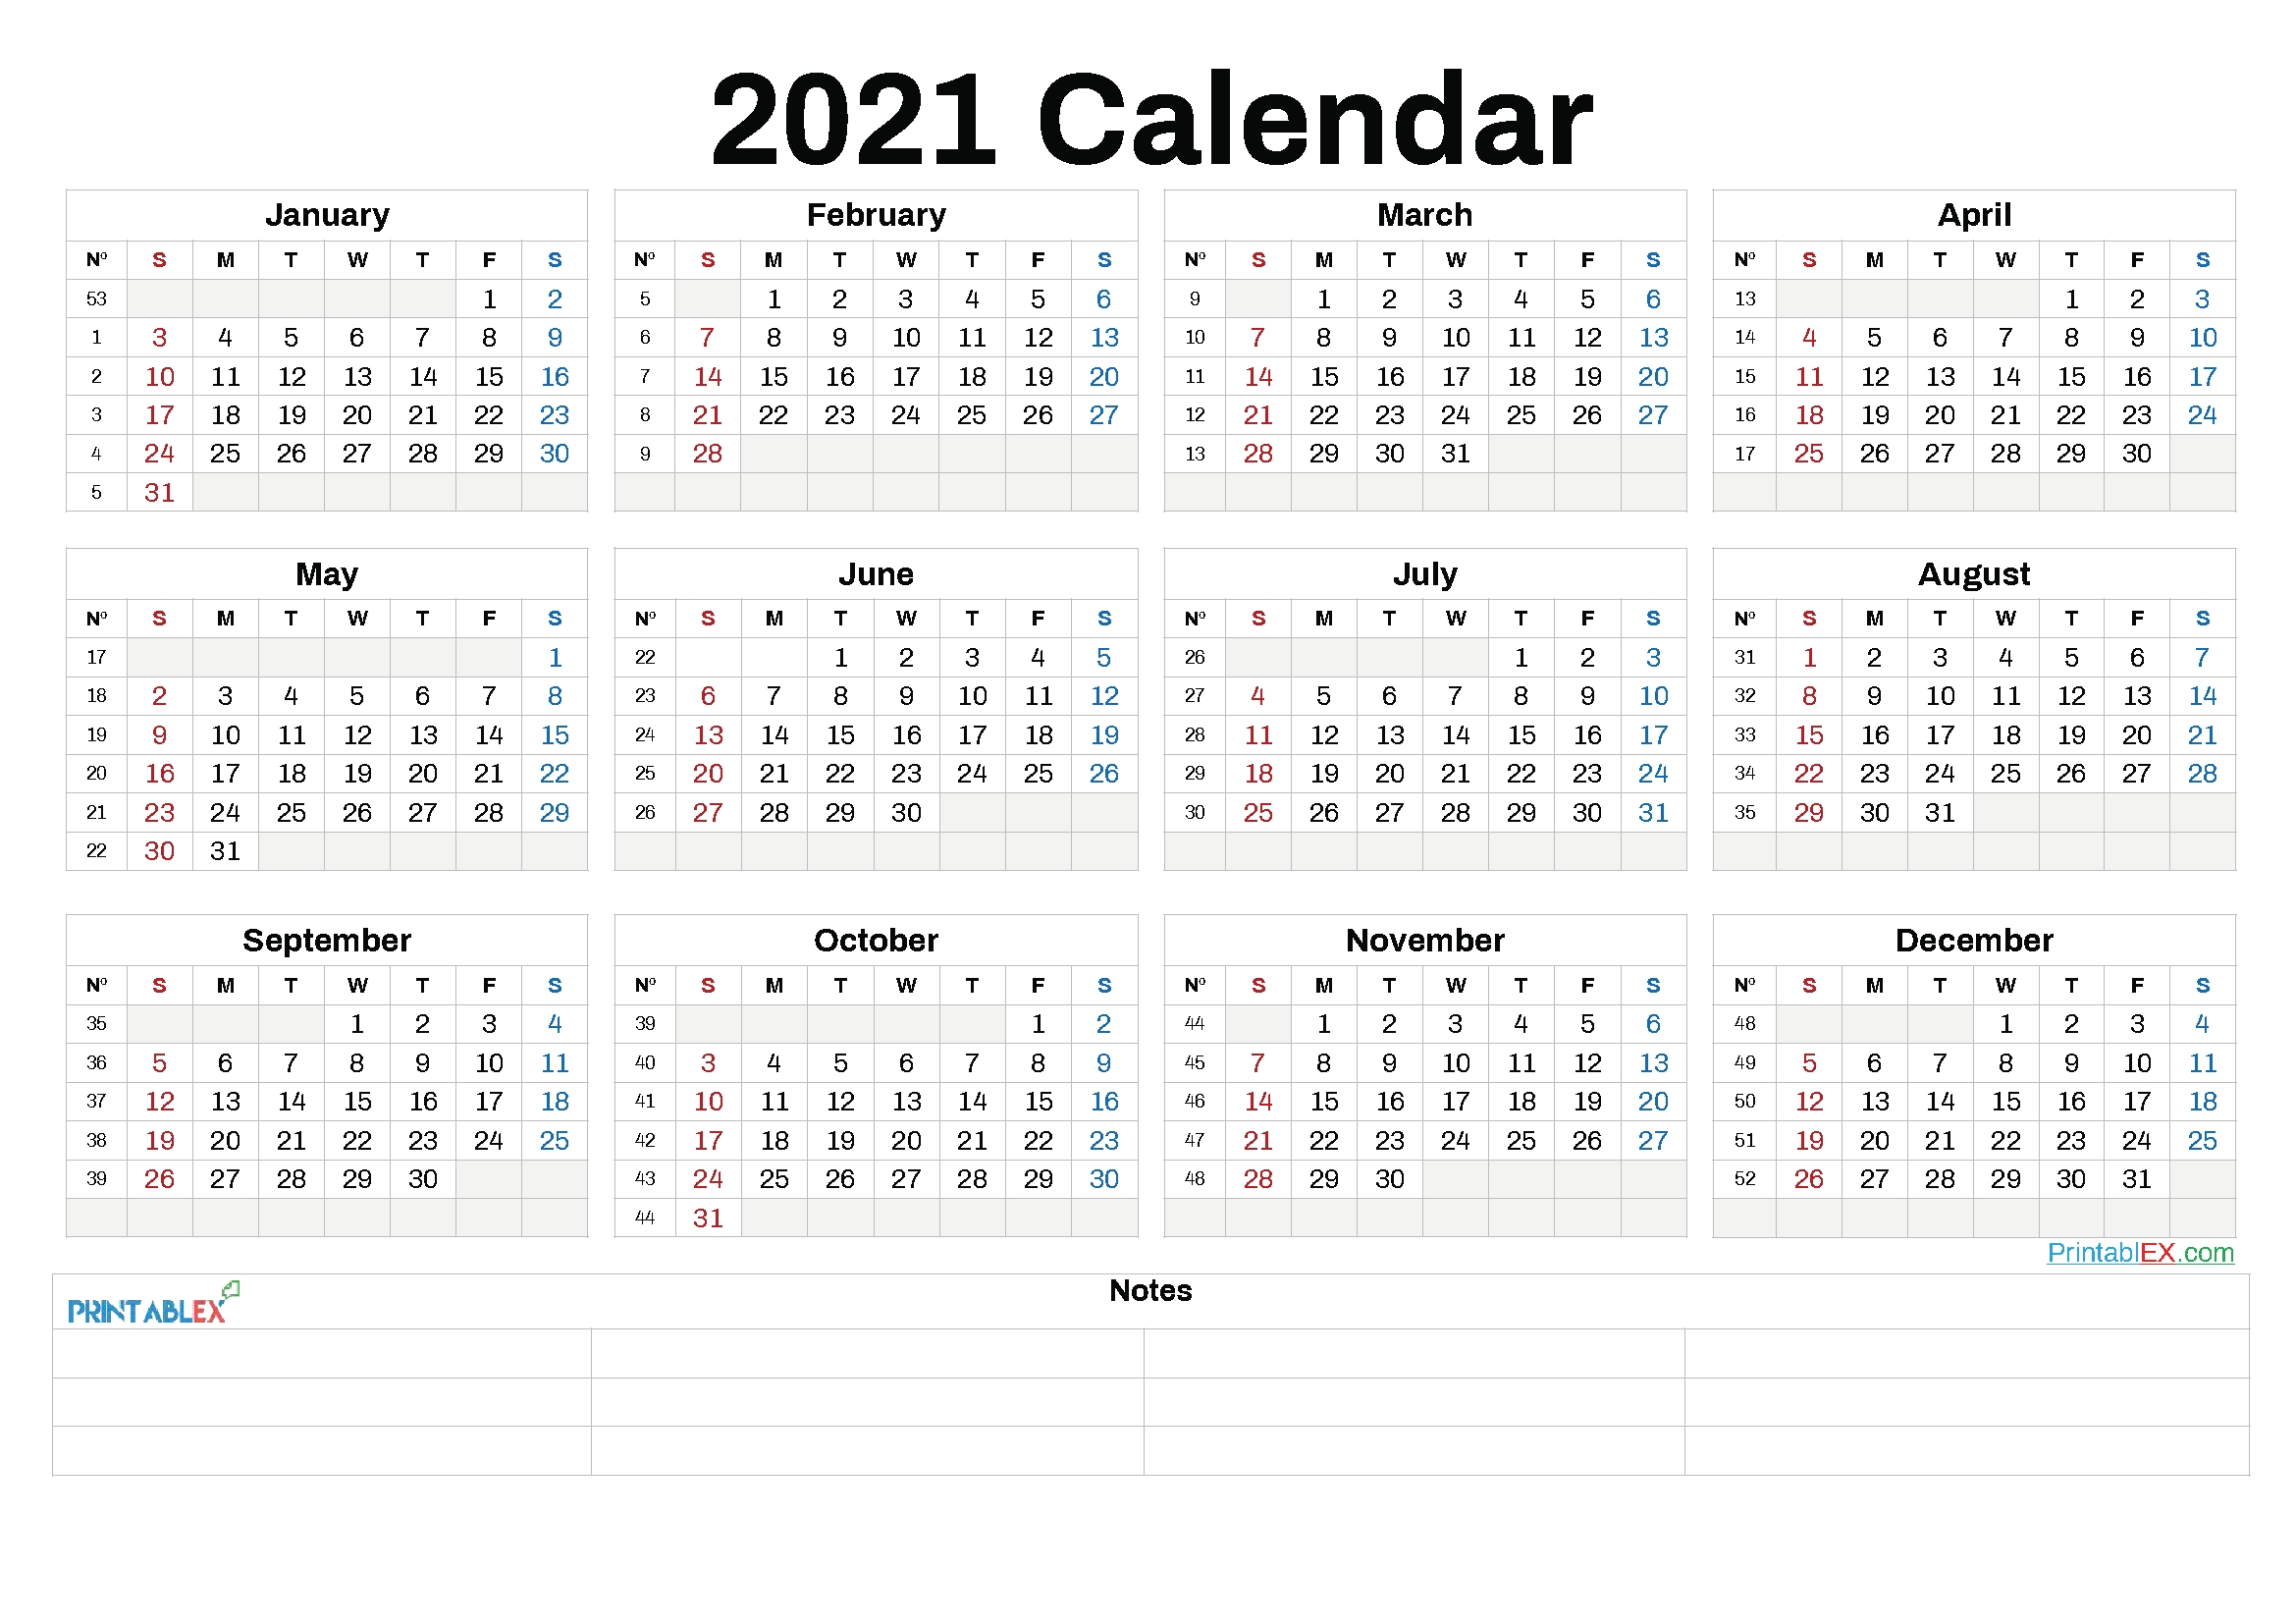 Free 2021 Yearly Calender Template / Free Printable 2021 Calendar Templates - Choose From Yearly inside Free Printable Calendarlabs 2021 Graphics